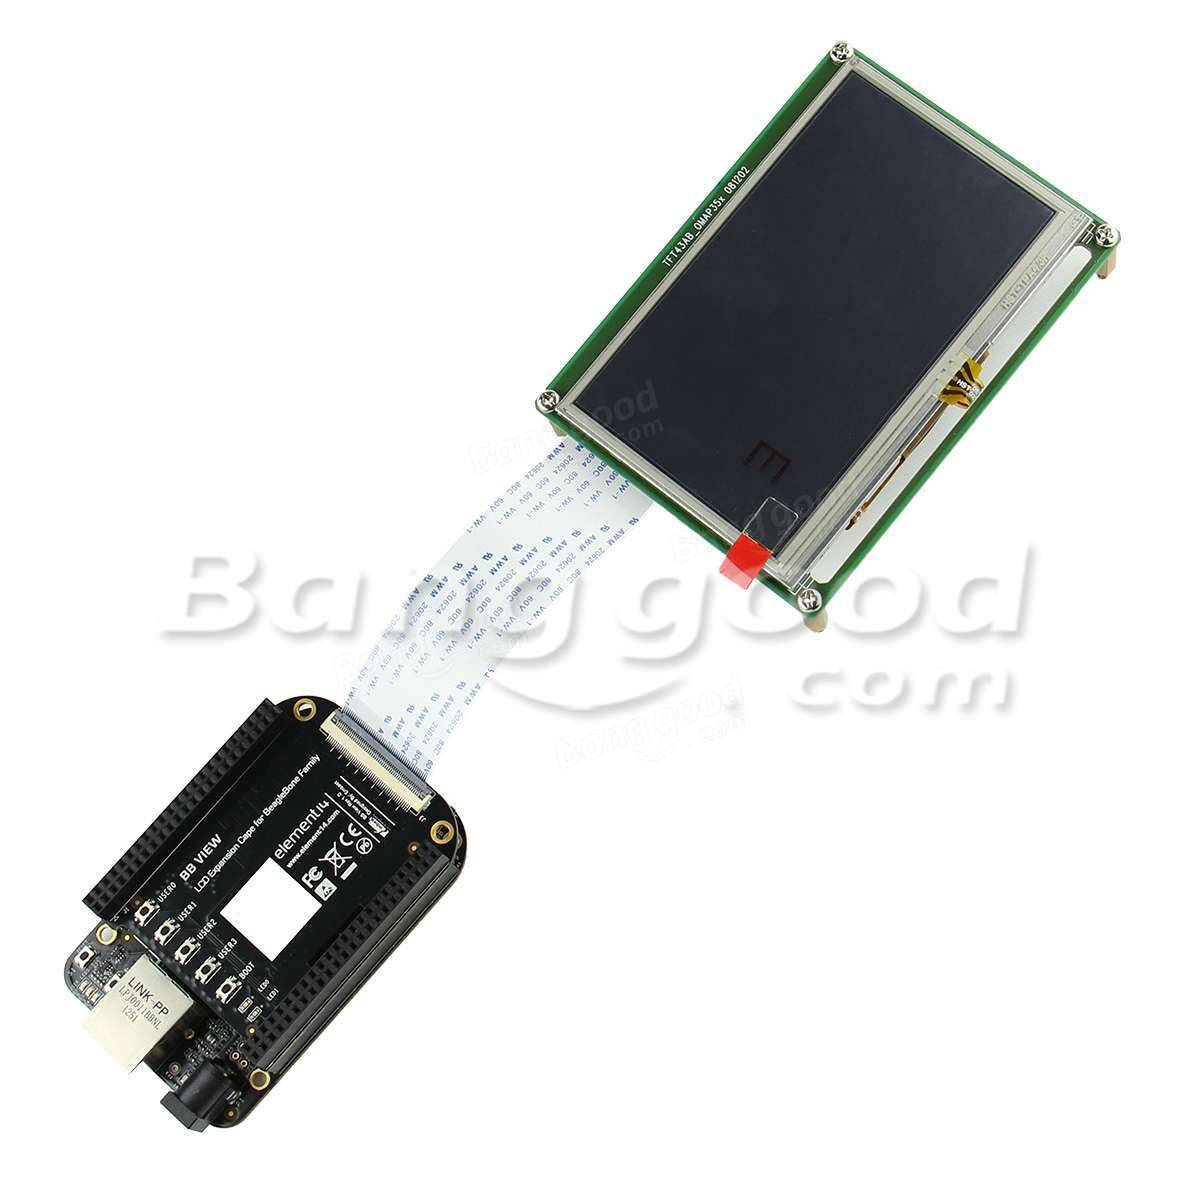 LCD8000-43T 4.3 Inch LCD Sreen + BB VIEW Expansion Board